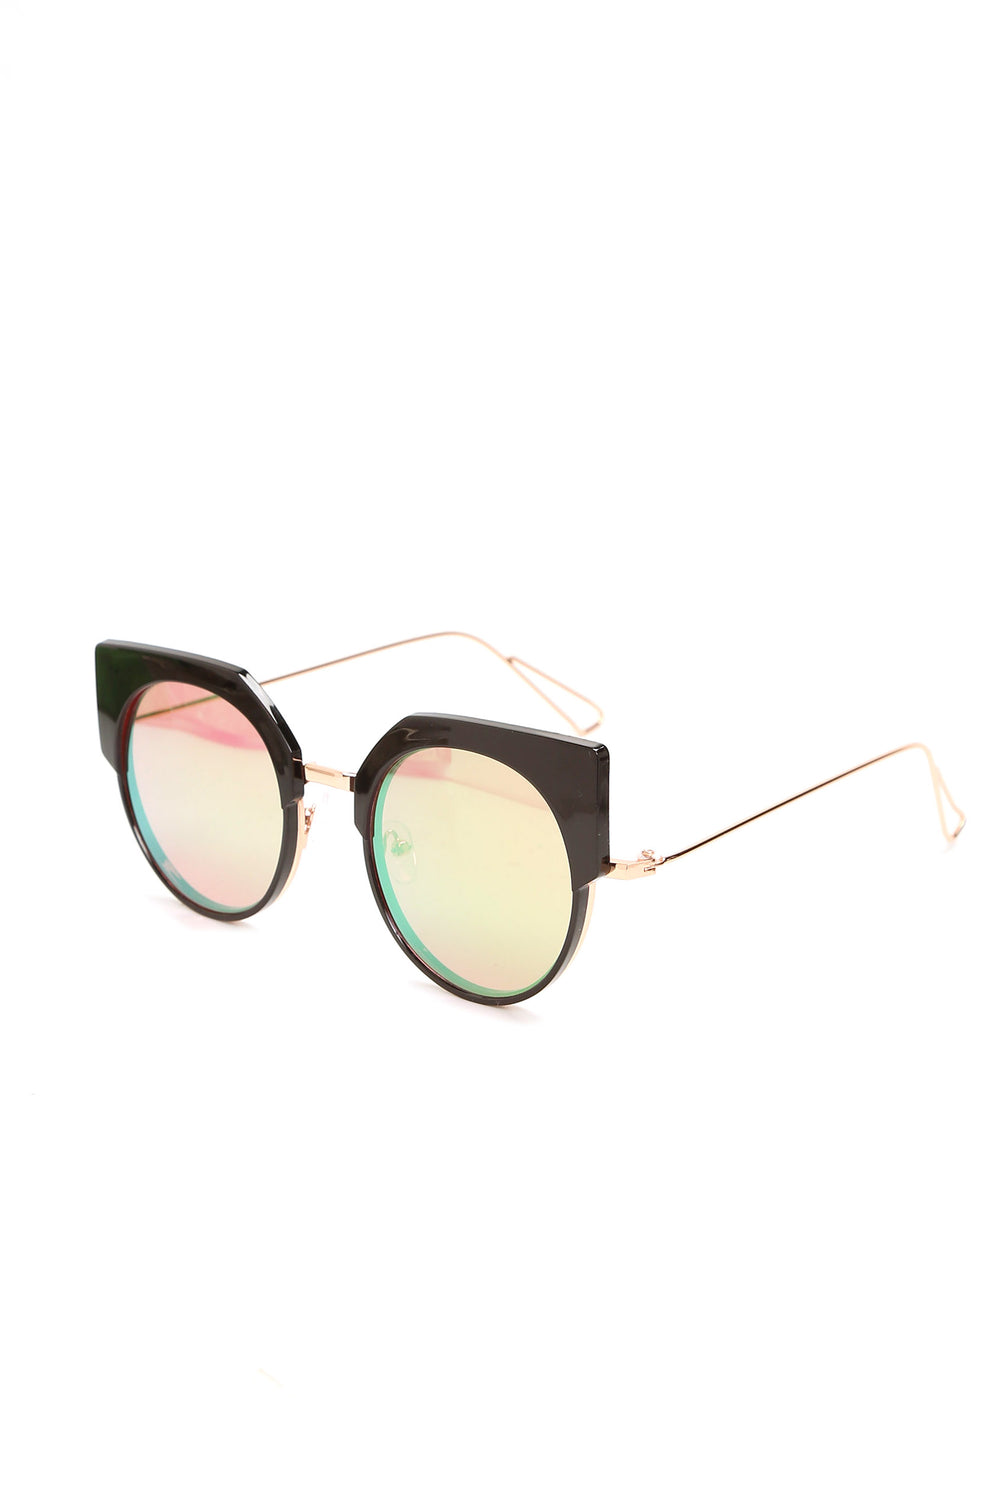 Say Nothing Sunglasses - Pink